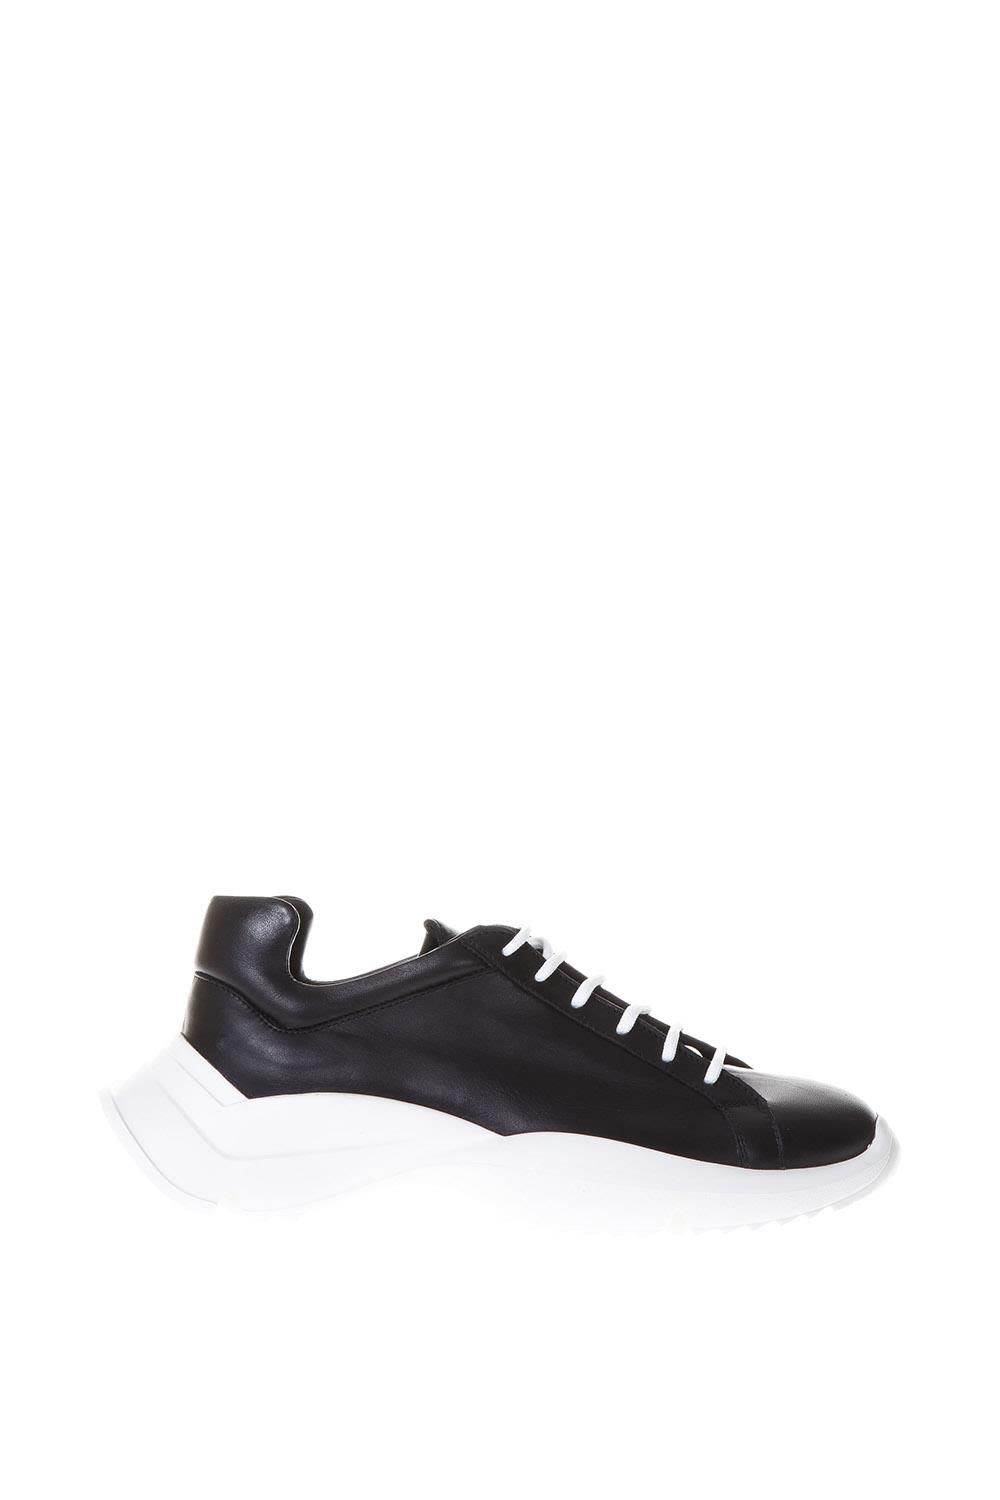 sculpted sole sneakers - Black Cinzia Araia TonQf8r5JV